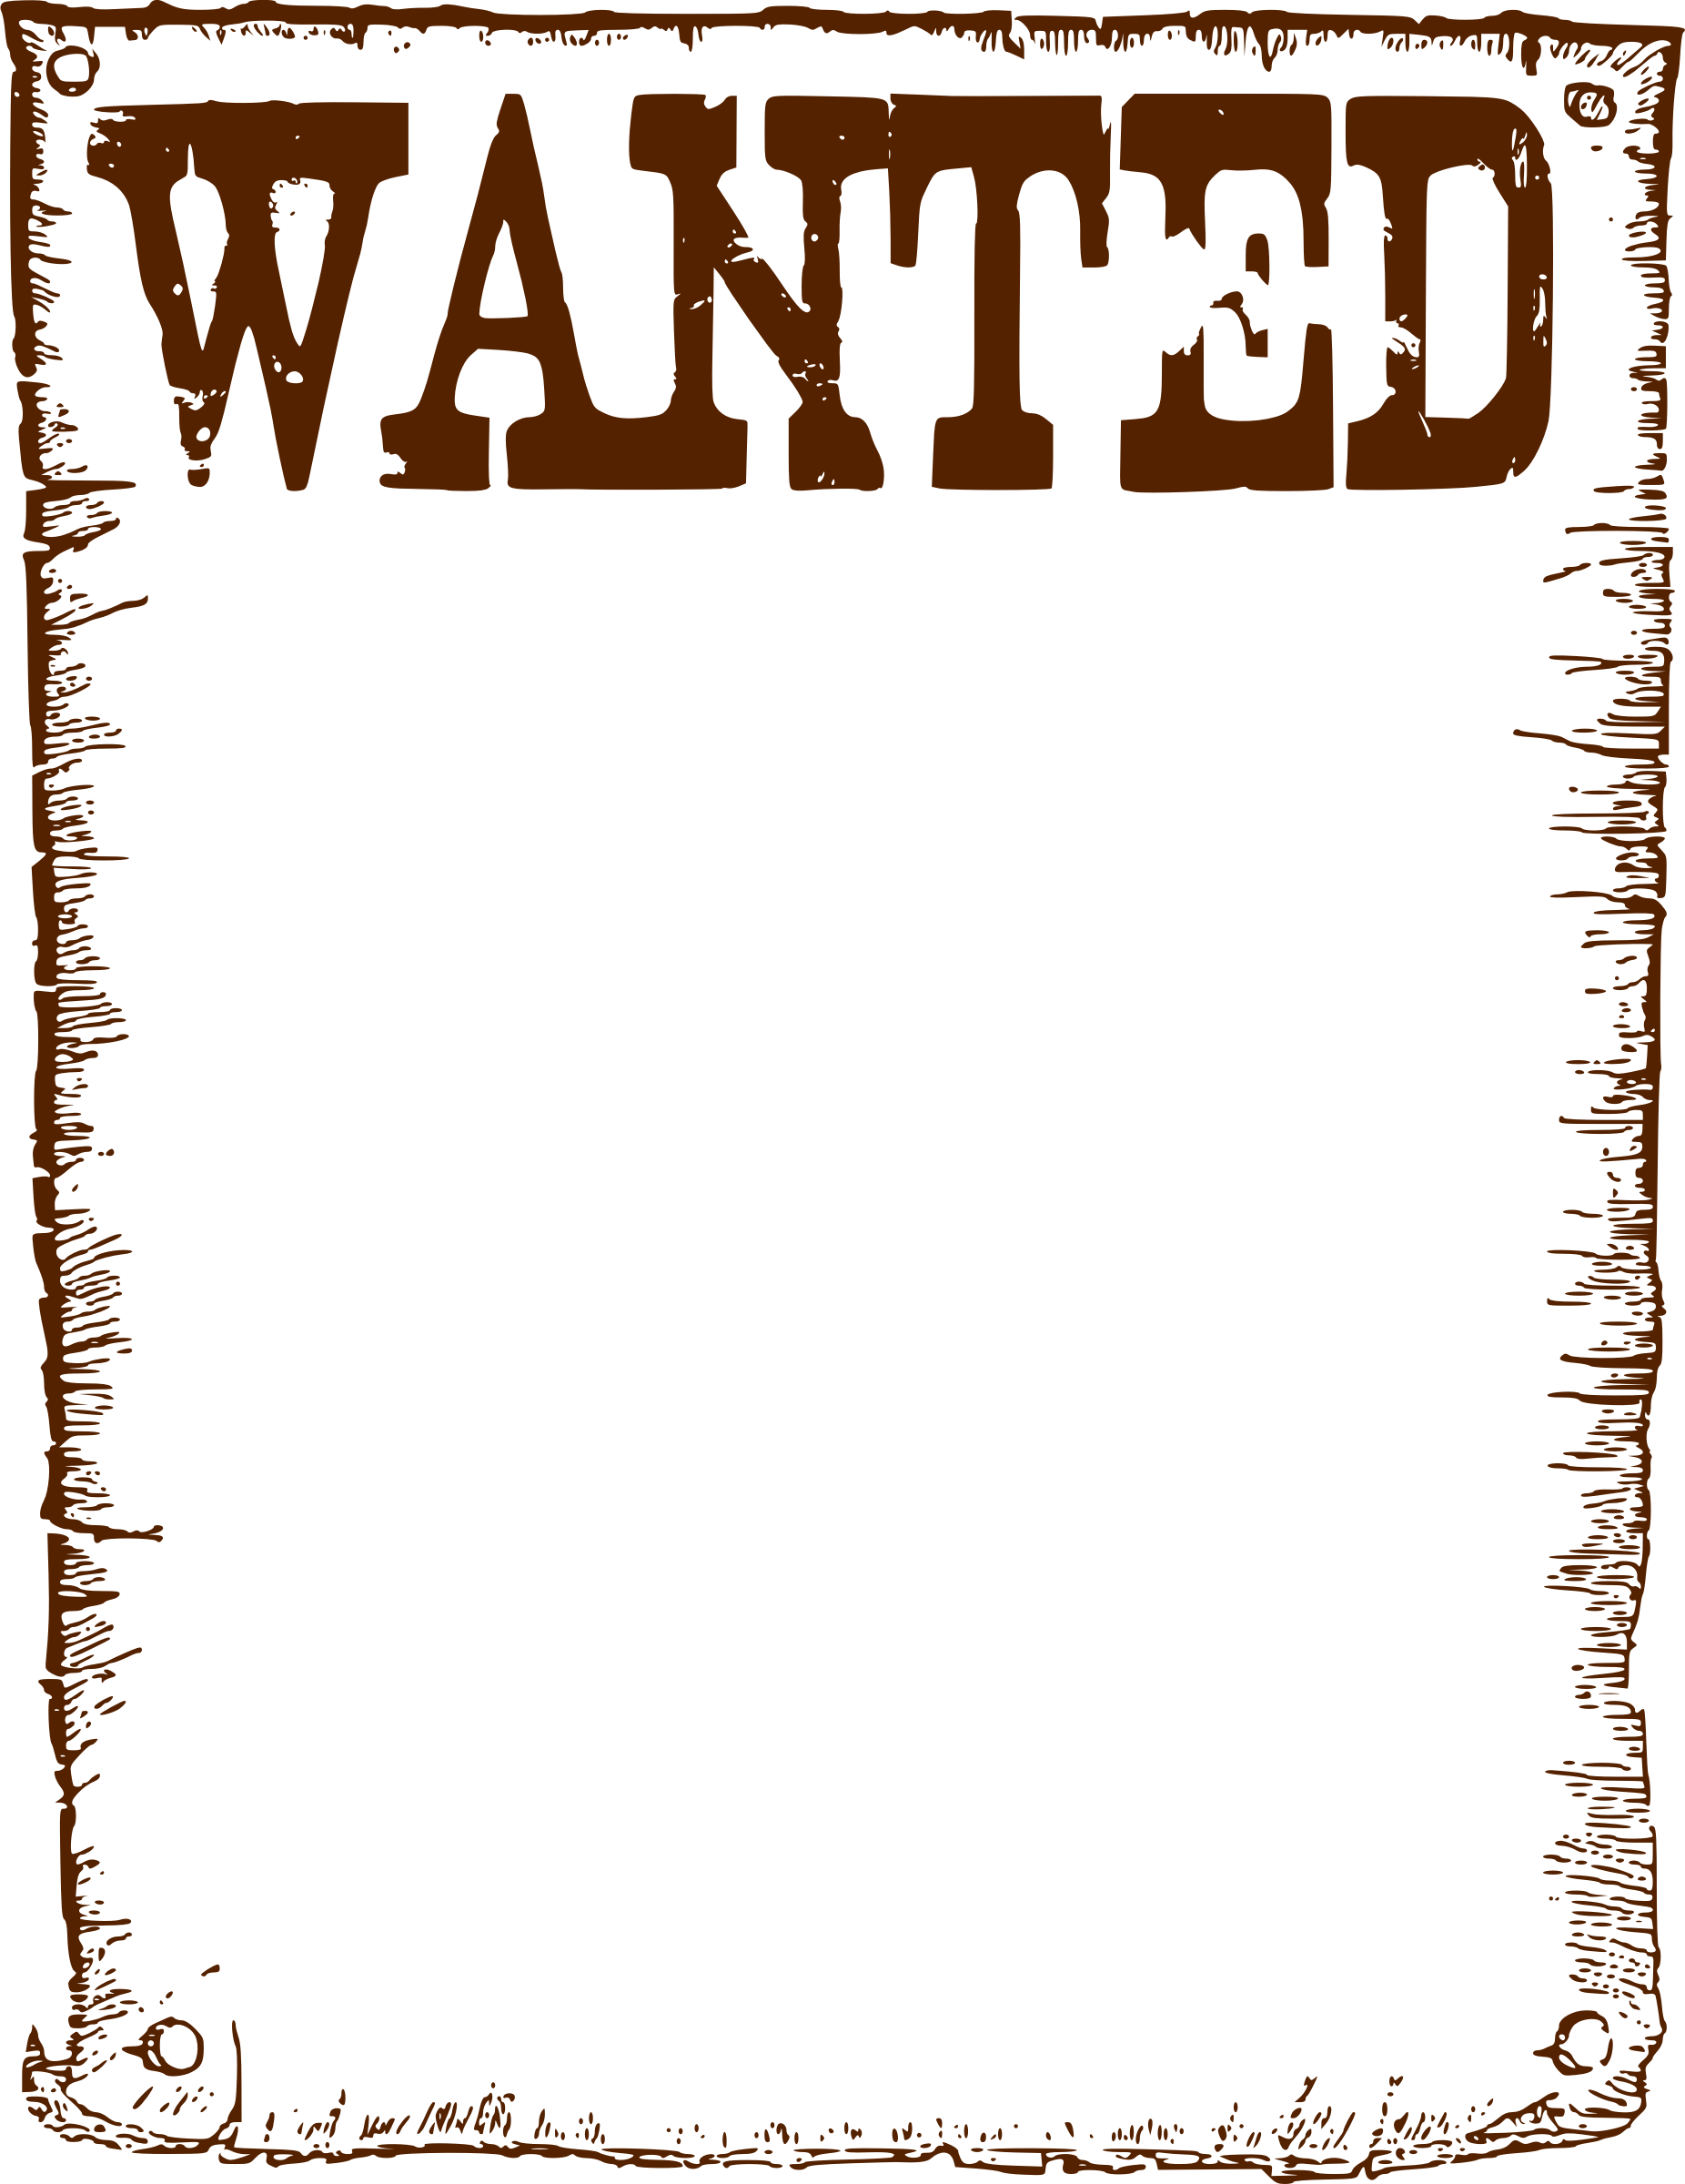 graphic royalty free download Western wanted poster clipart. Template clip art